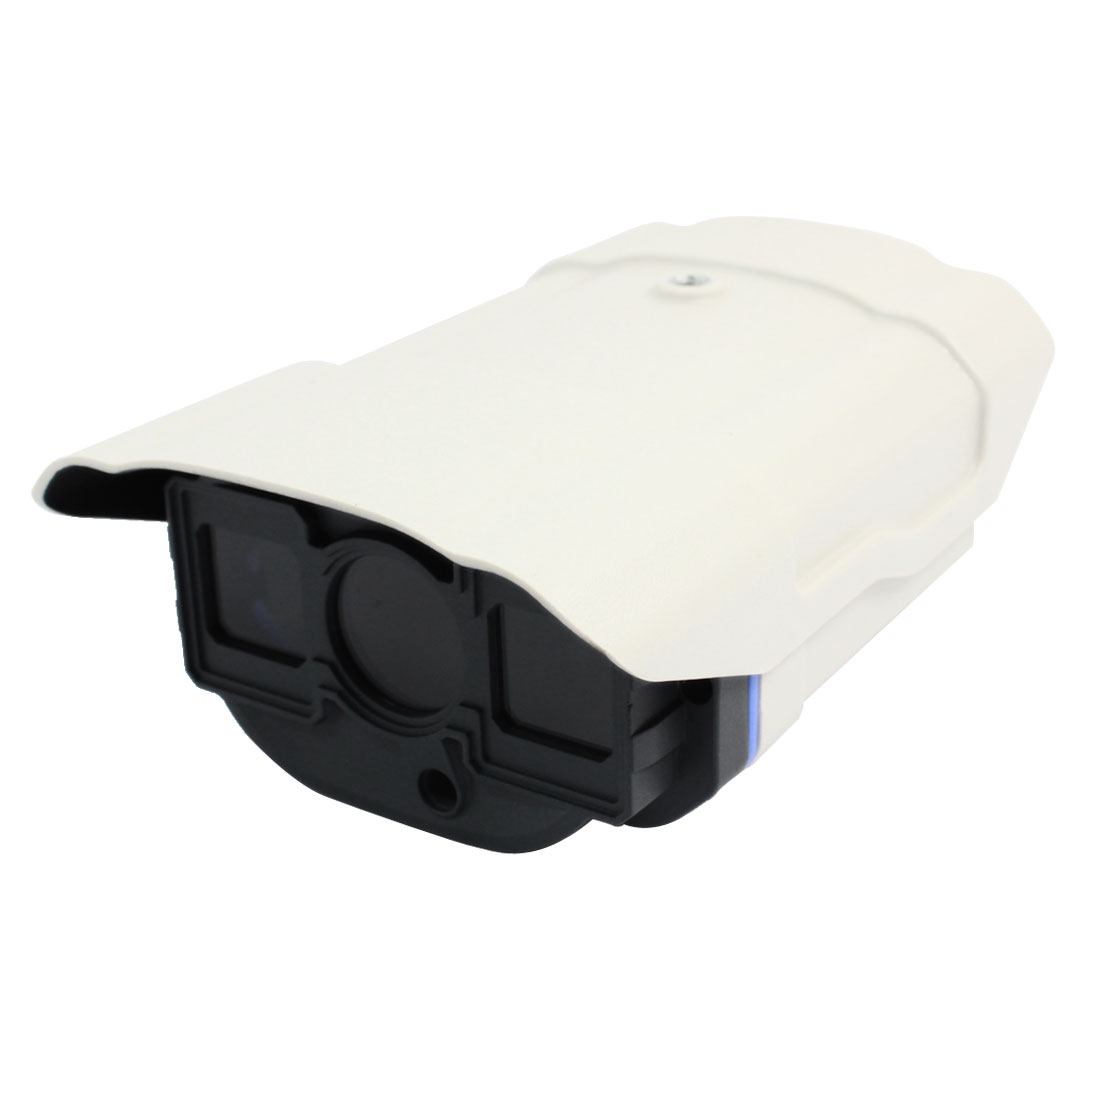 "White Gray Plastic CCD Camera Housing Case 6.3"" x 4.3"" x 2.5"""